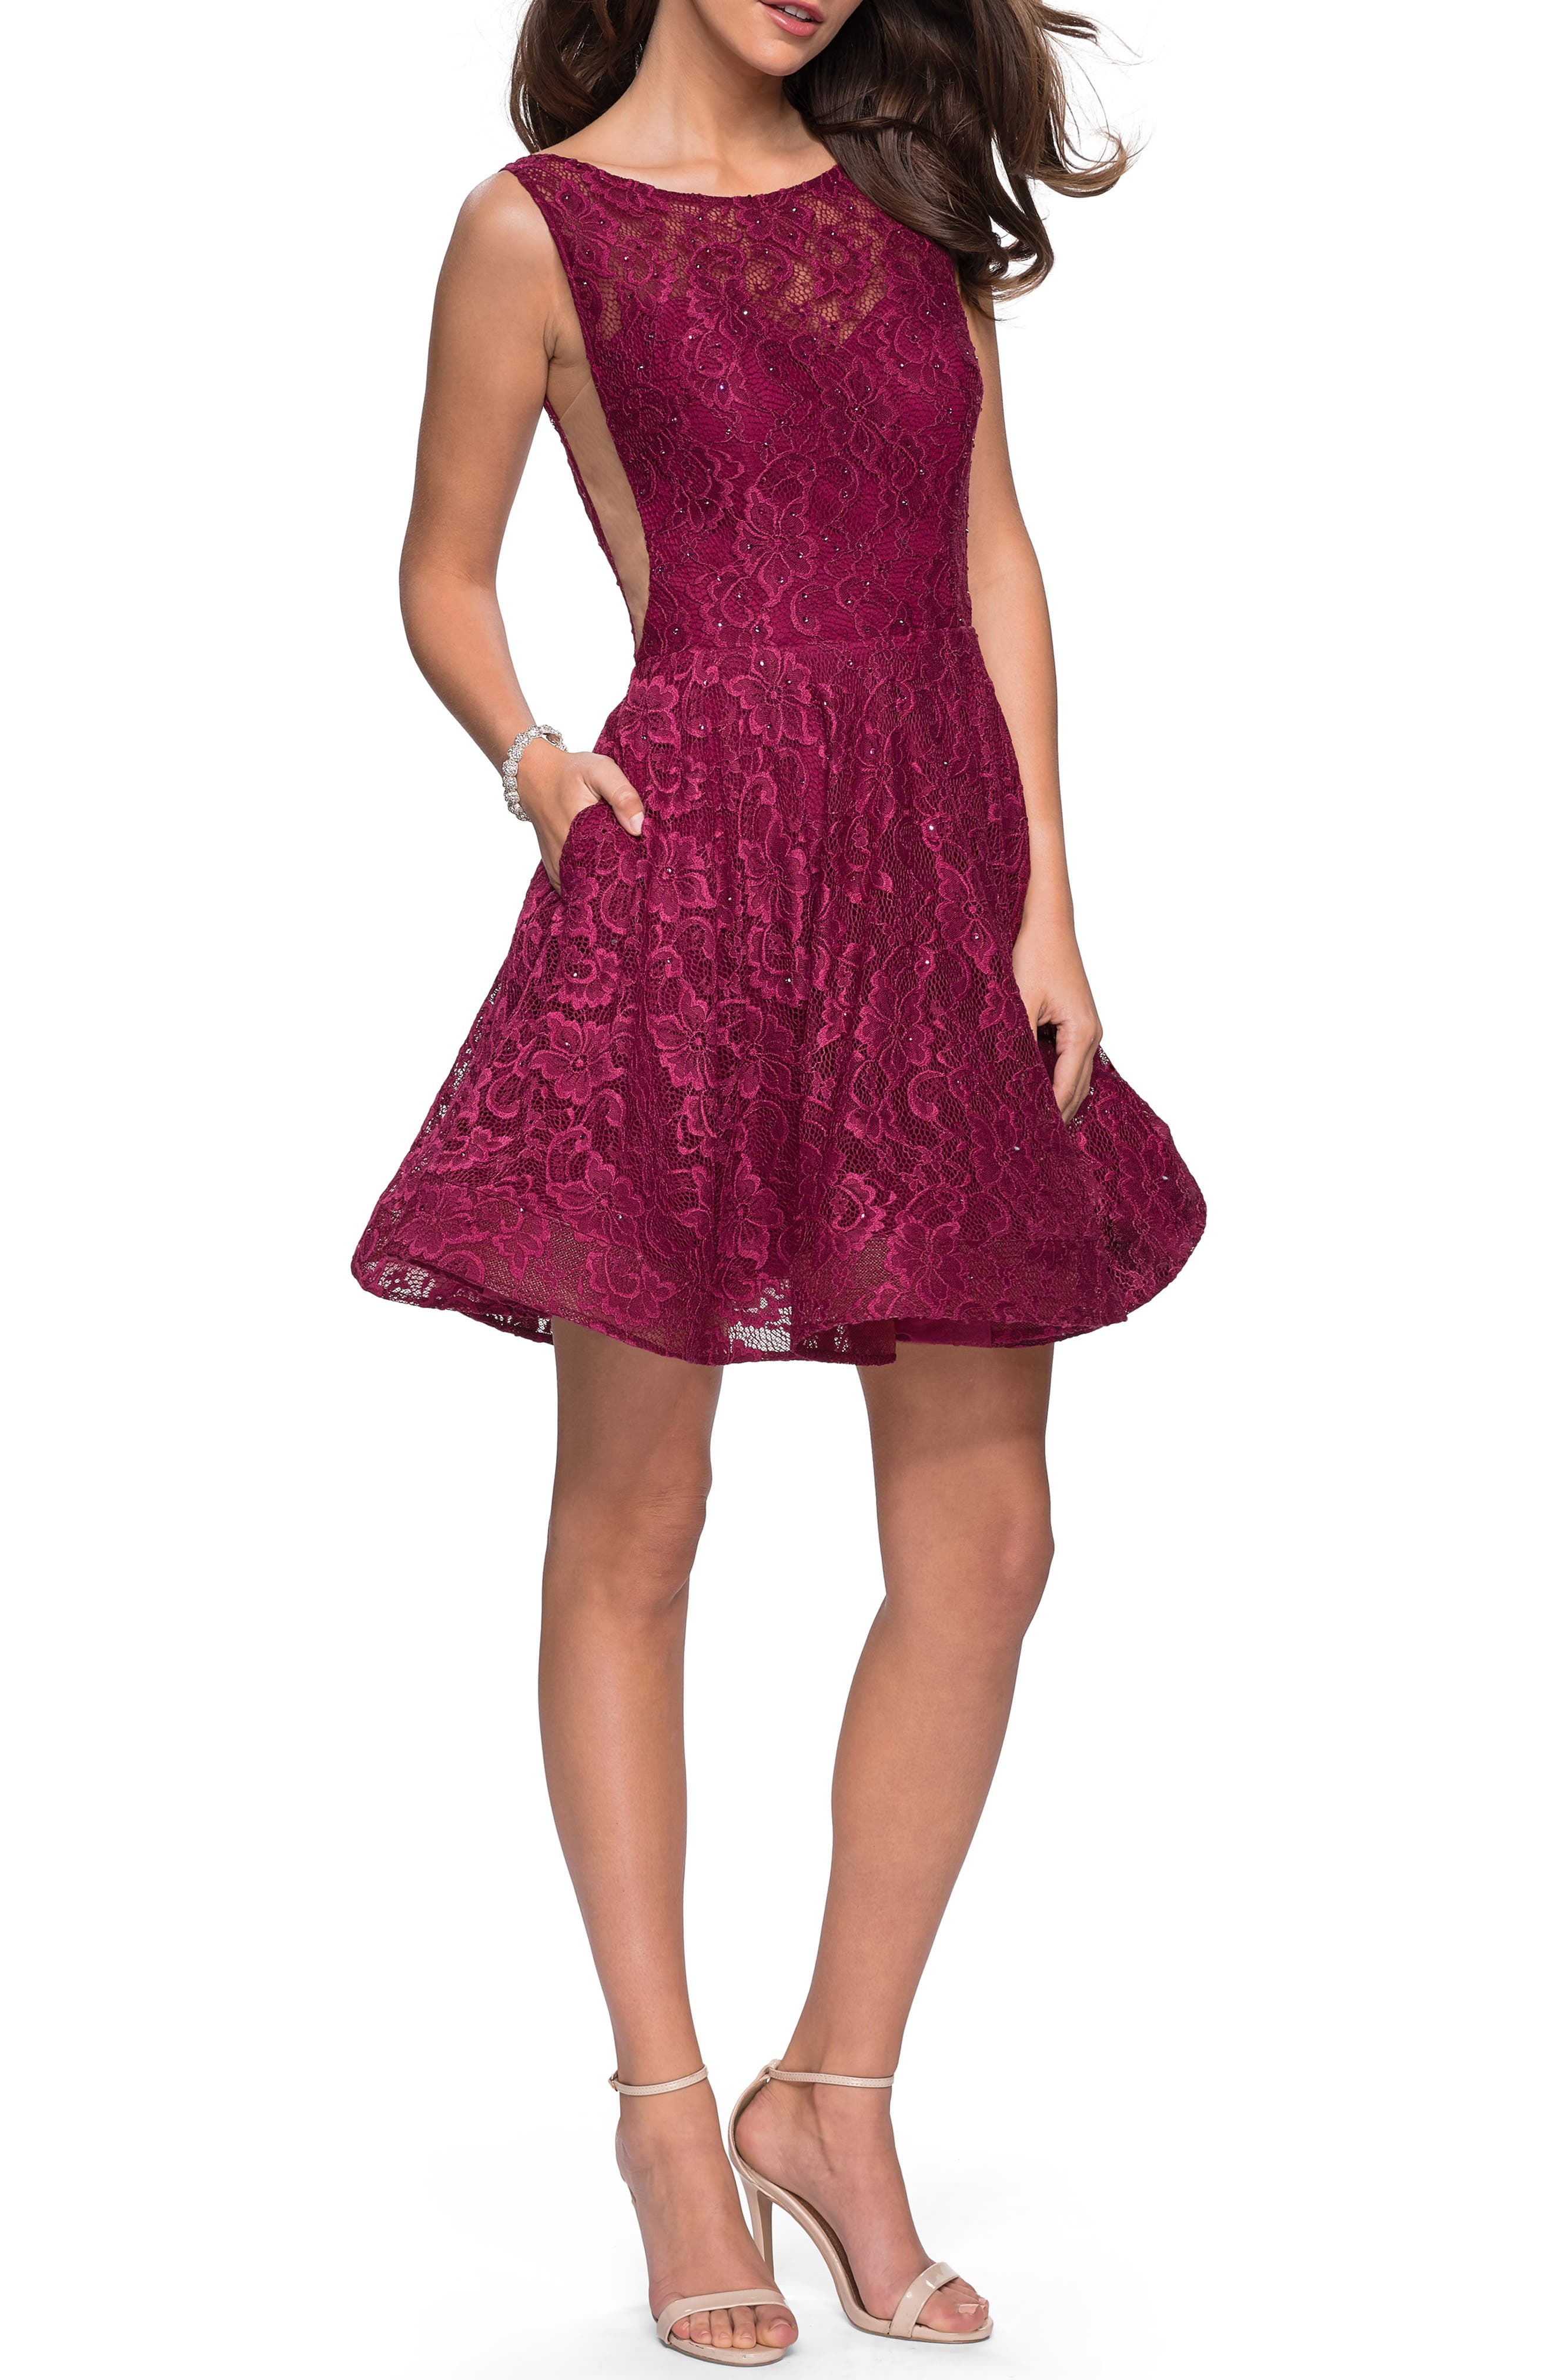 La Femme Lace Fit & Flare Party Dress, Burgundy